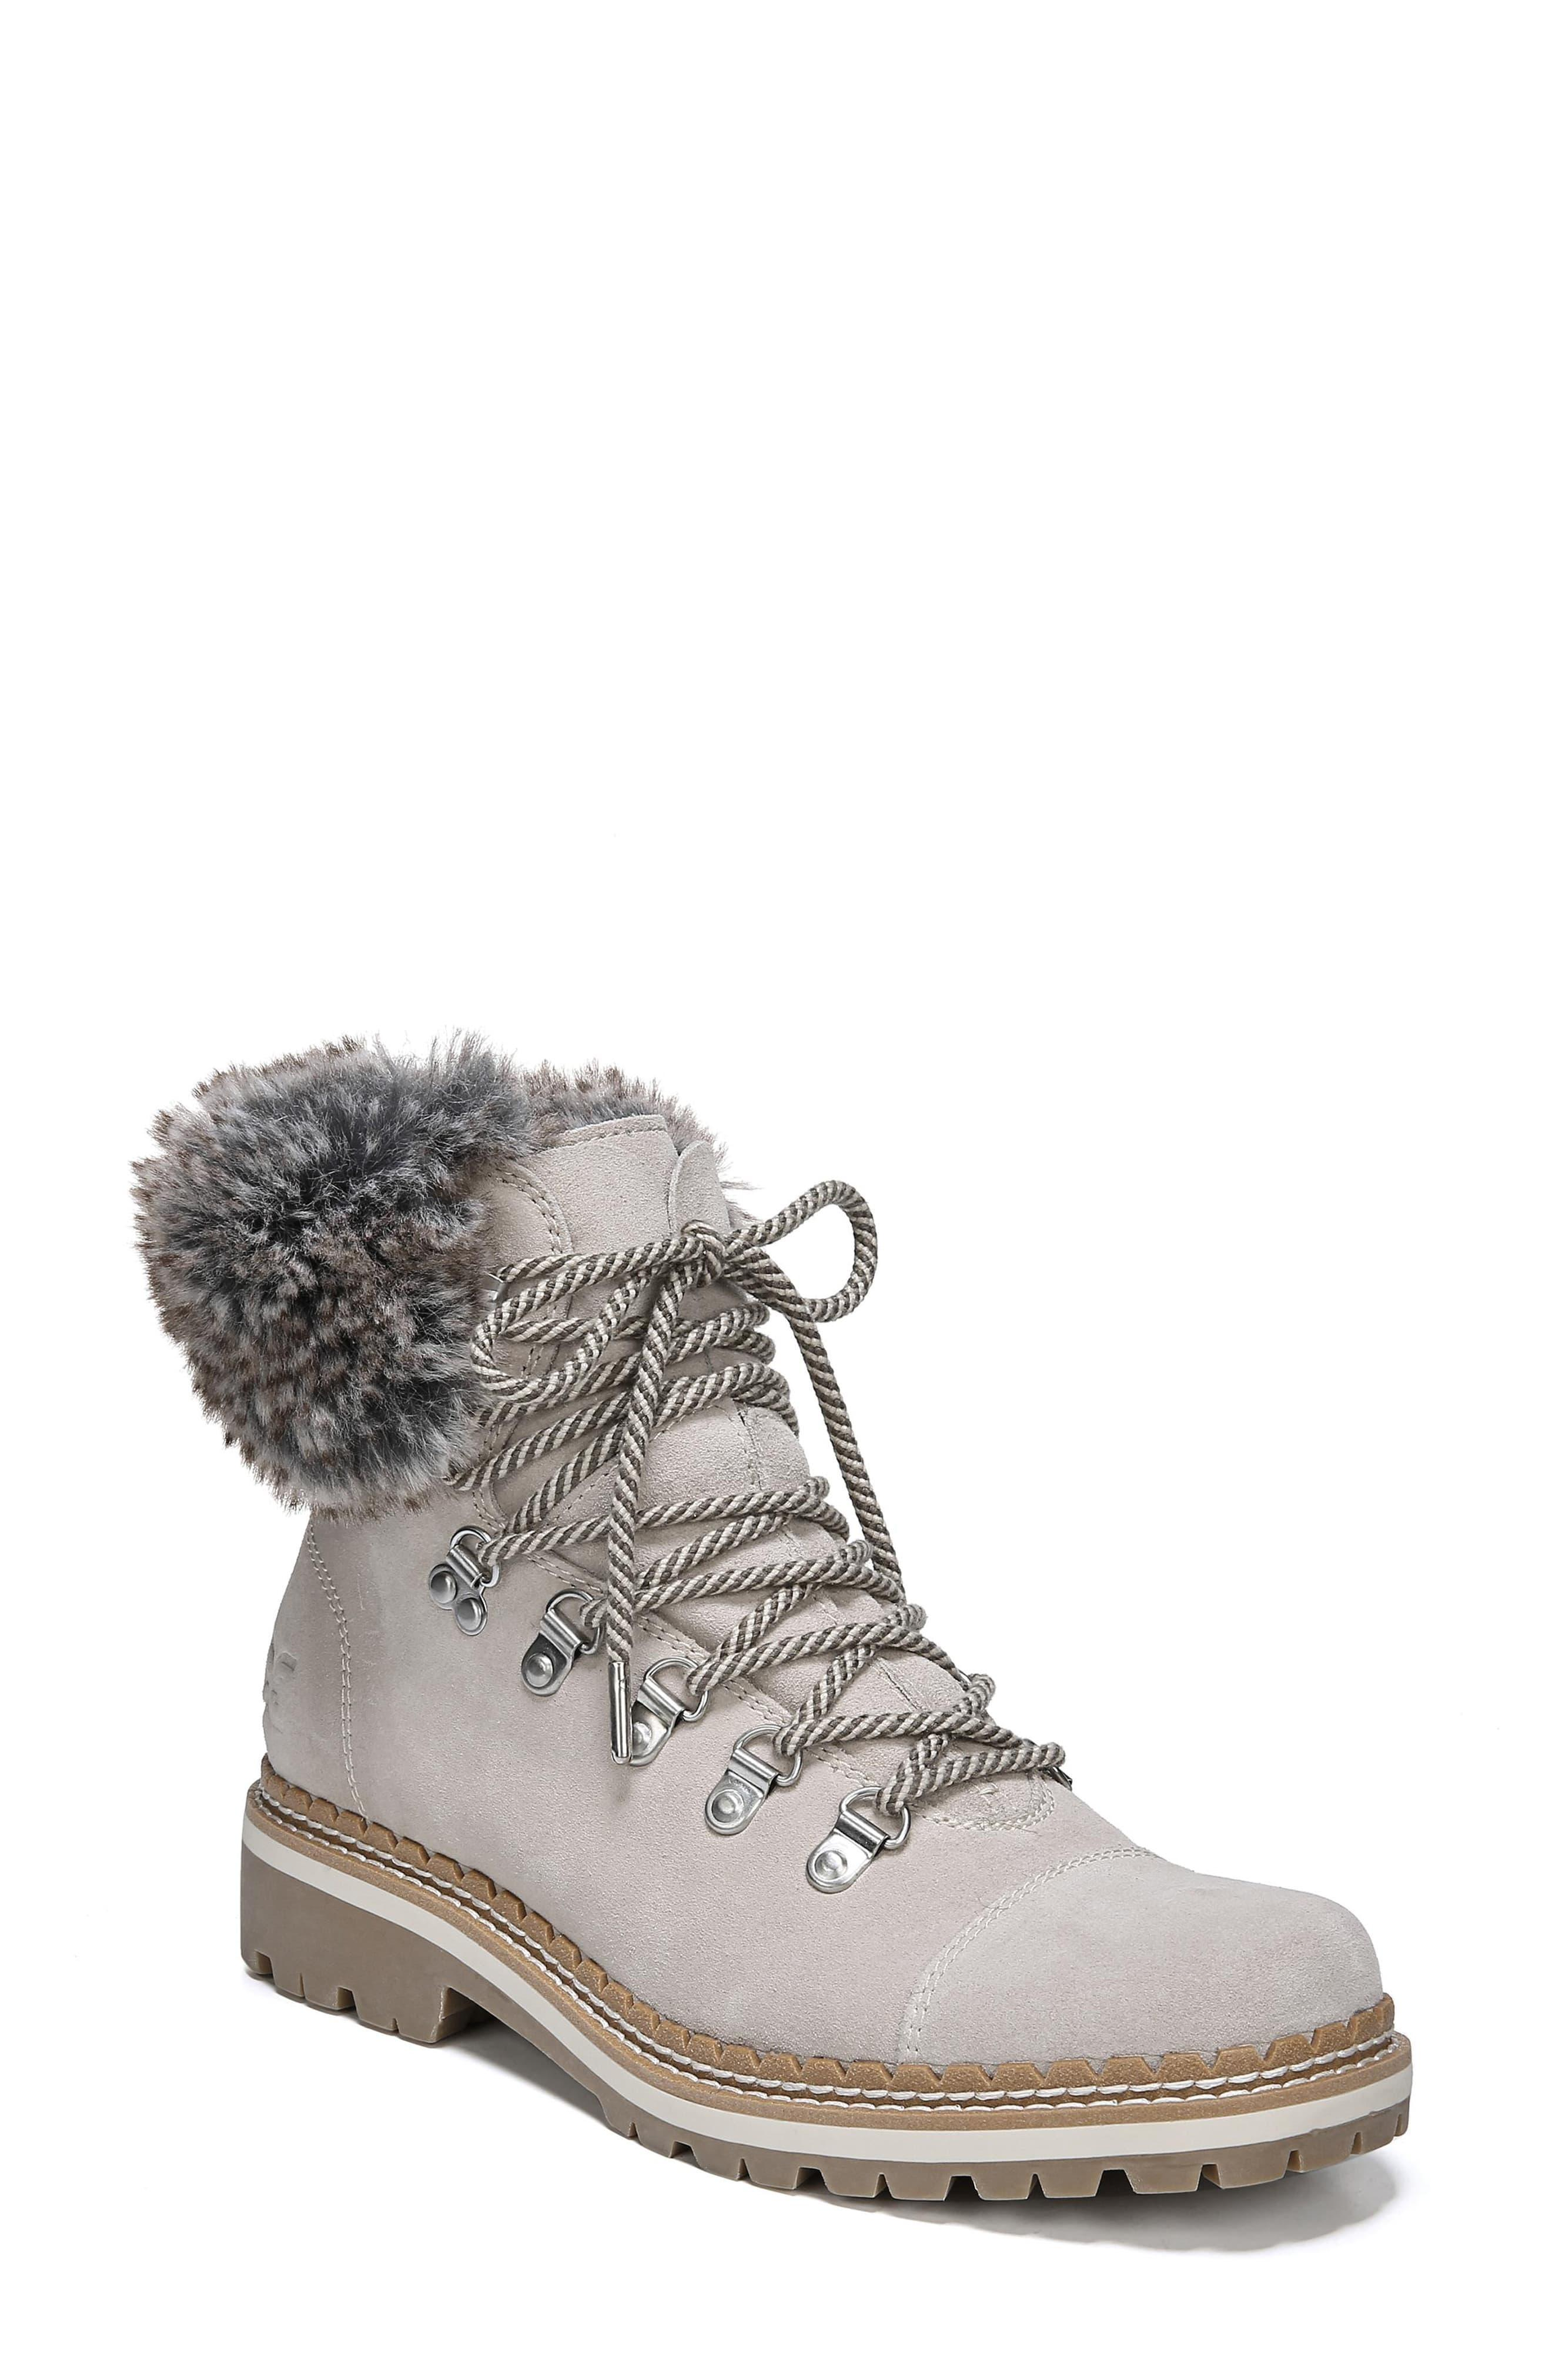 99eab5a9e5c Women's Gray Bowen Bistro Suede And Faux Fur Hiking Boots